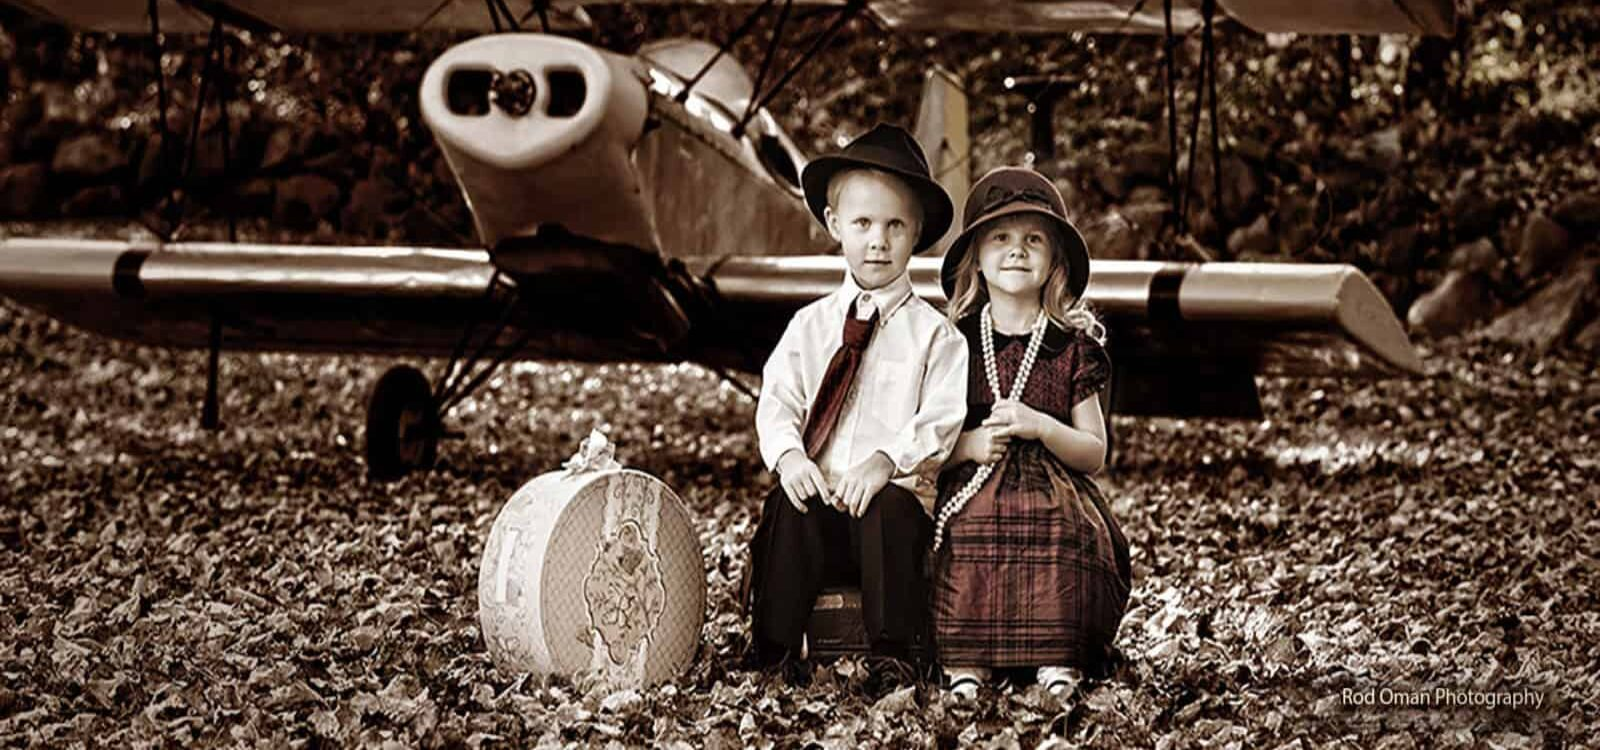 Kids with Bi Plane Photo